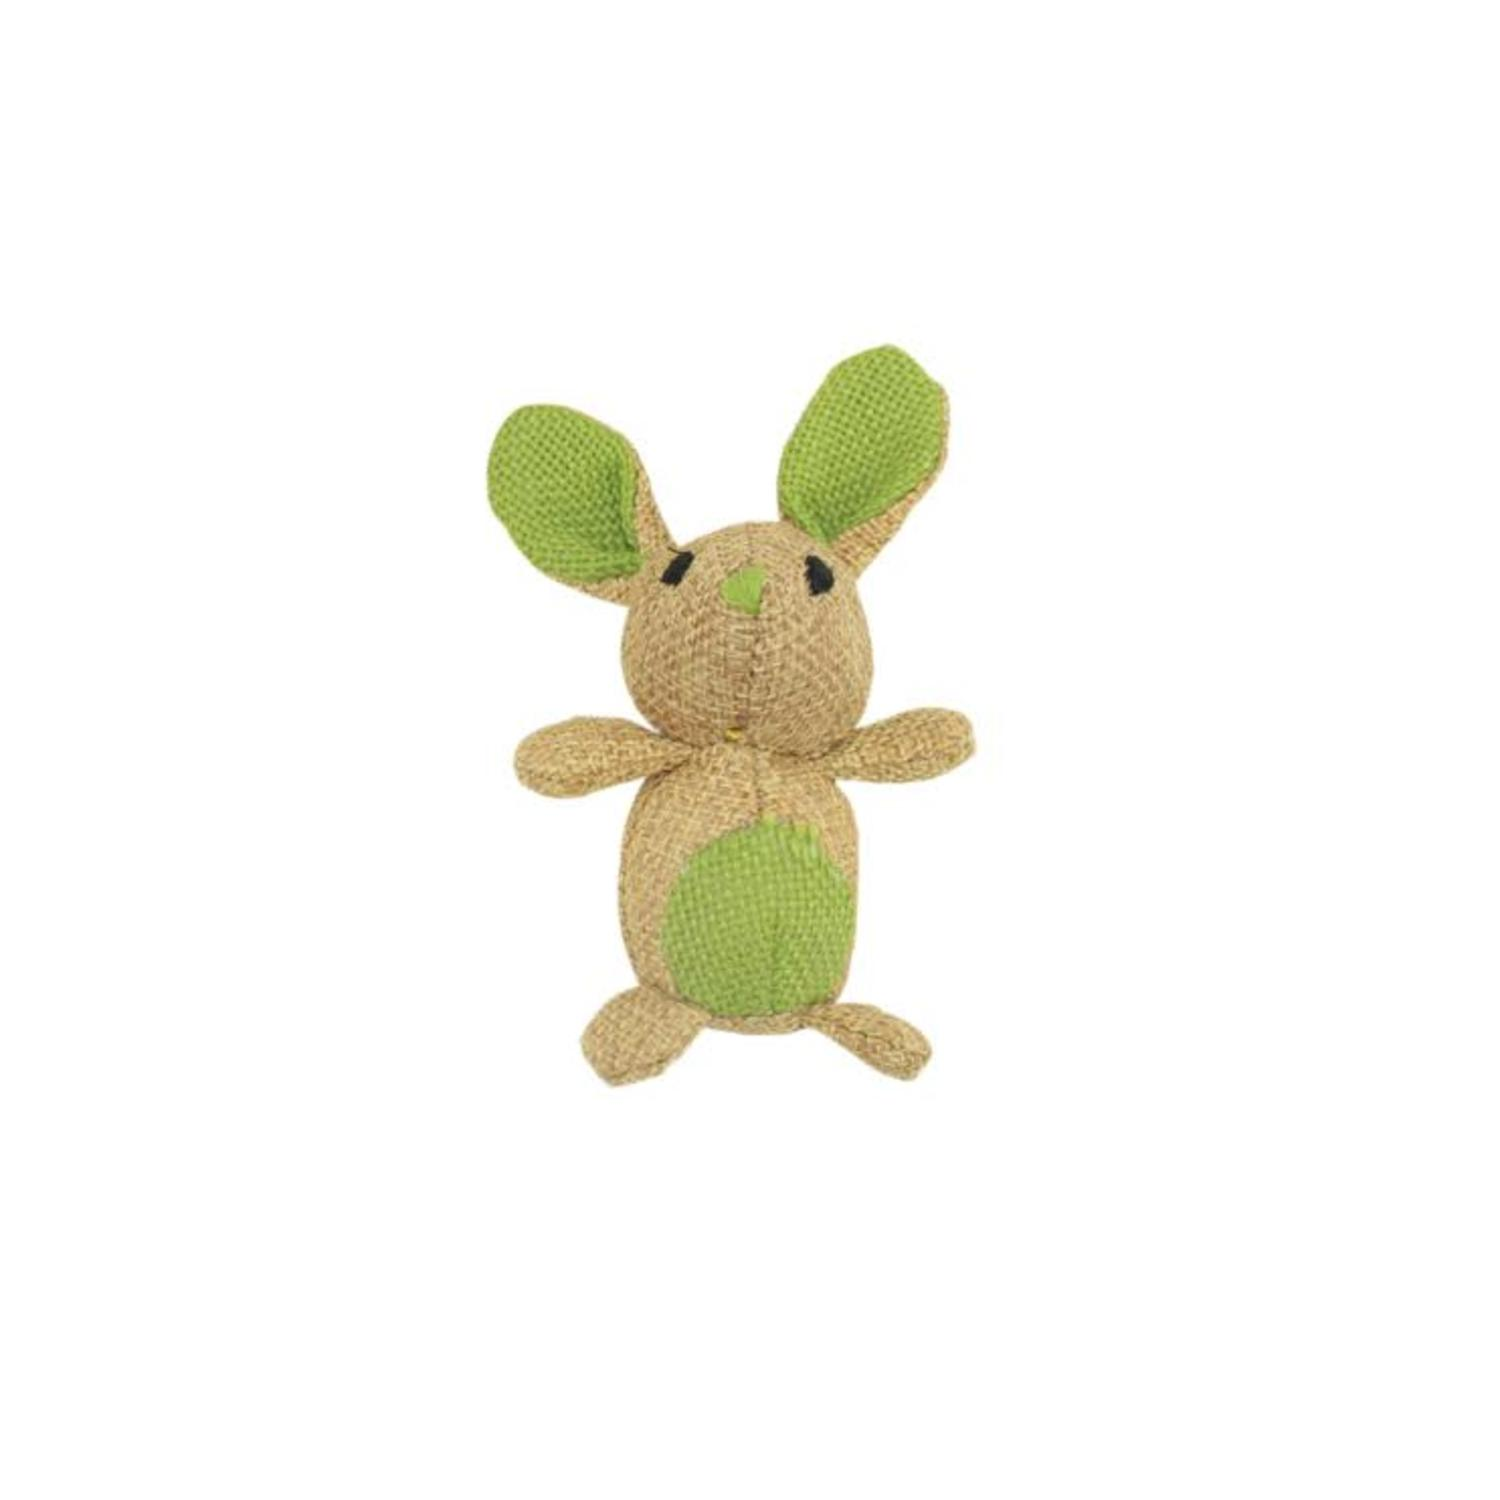 "3.5"" Brown and Green Natural Jute Mouse Shaped Cat Toy by Speedy Pet"